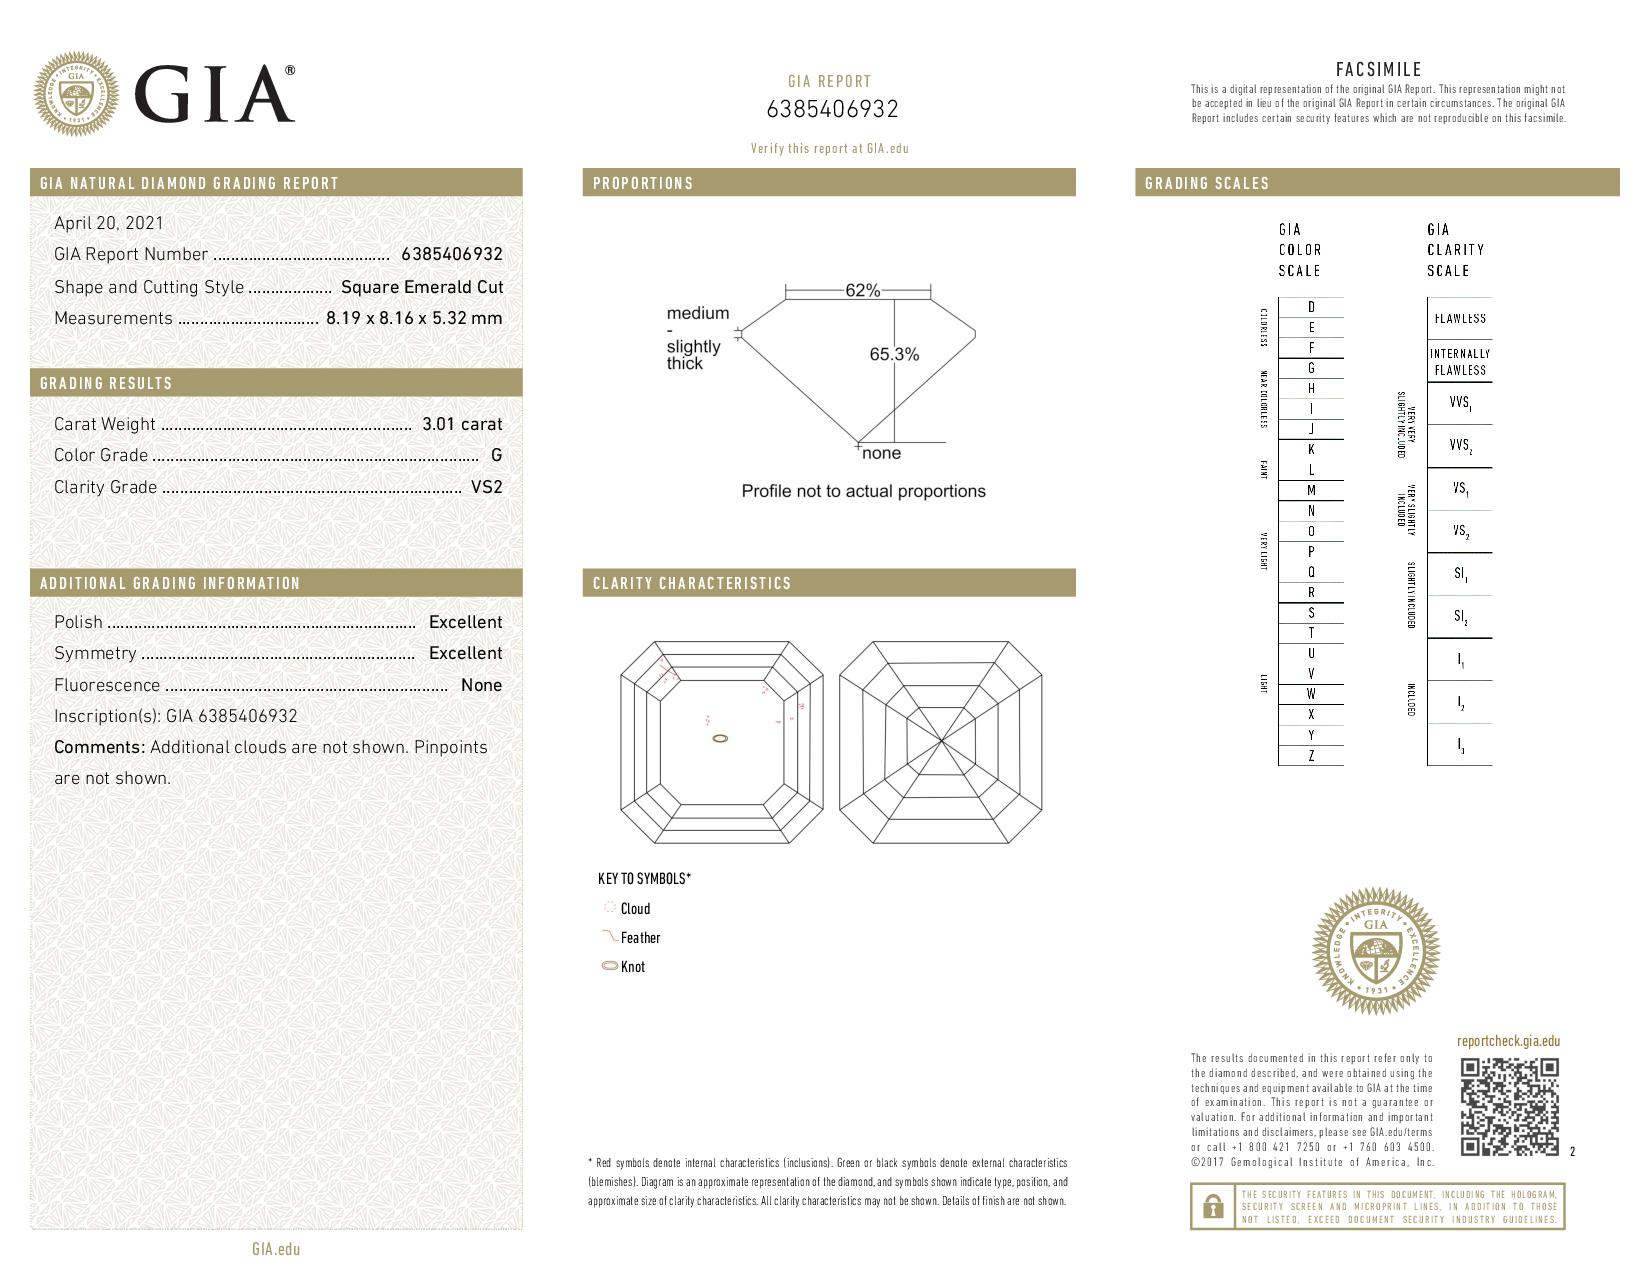 This is a 3.01 carat asscher shape, G color, VS2 clarity natural diamond accompanied by a GIA grading report.